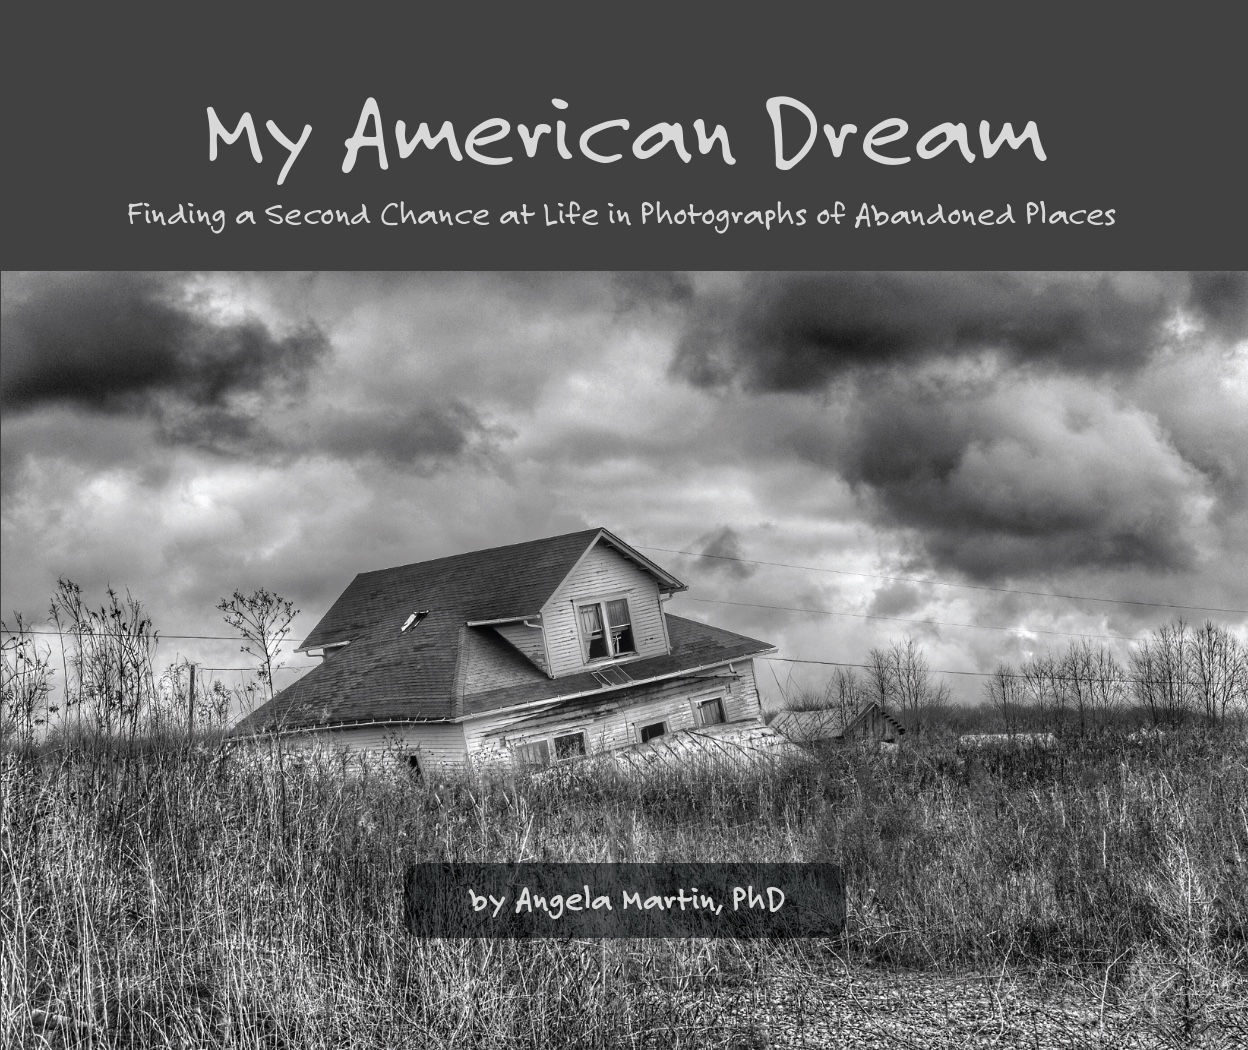 My American Dream Introduction Download. - Thank you for subscribing to the Light Brew Photography Newsletter. I really appreciate your support. Please click on the link below to access your free download:Introduction